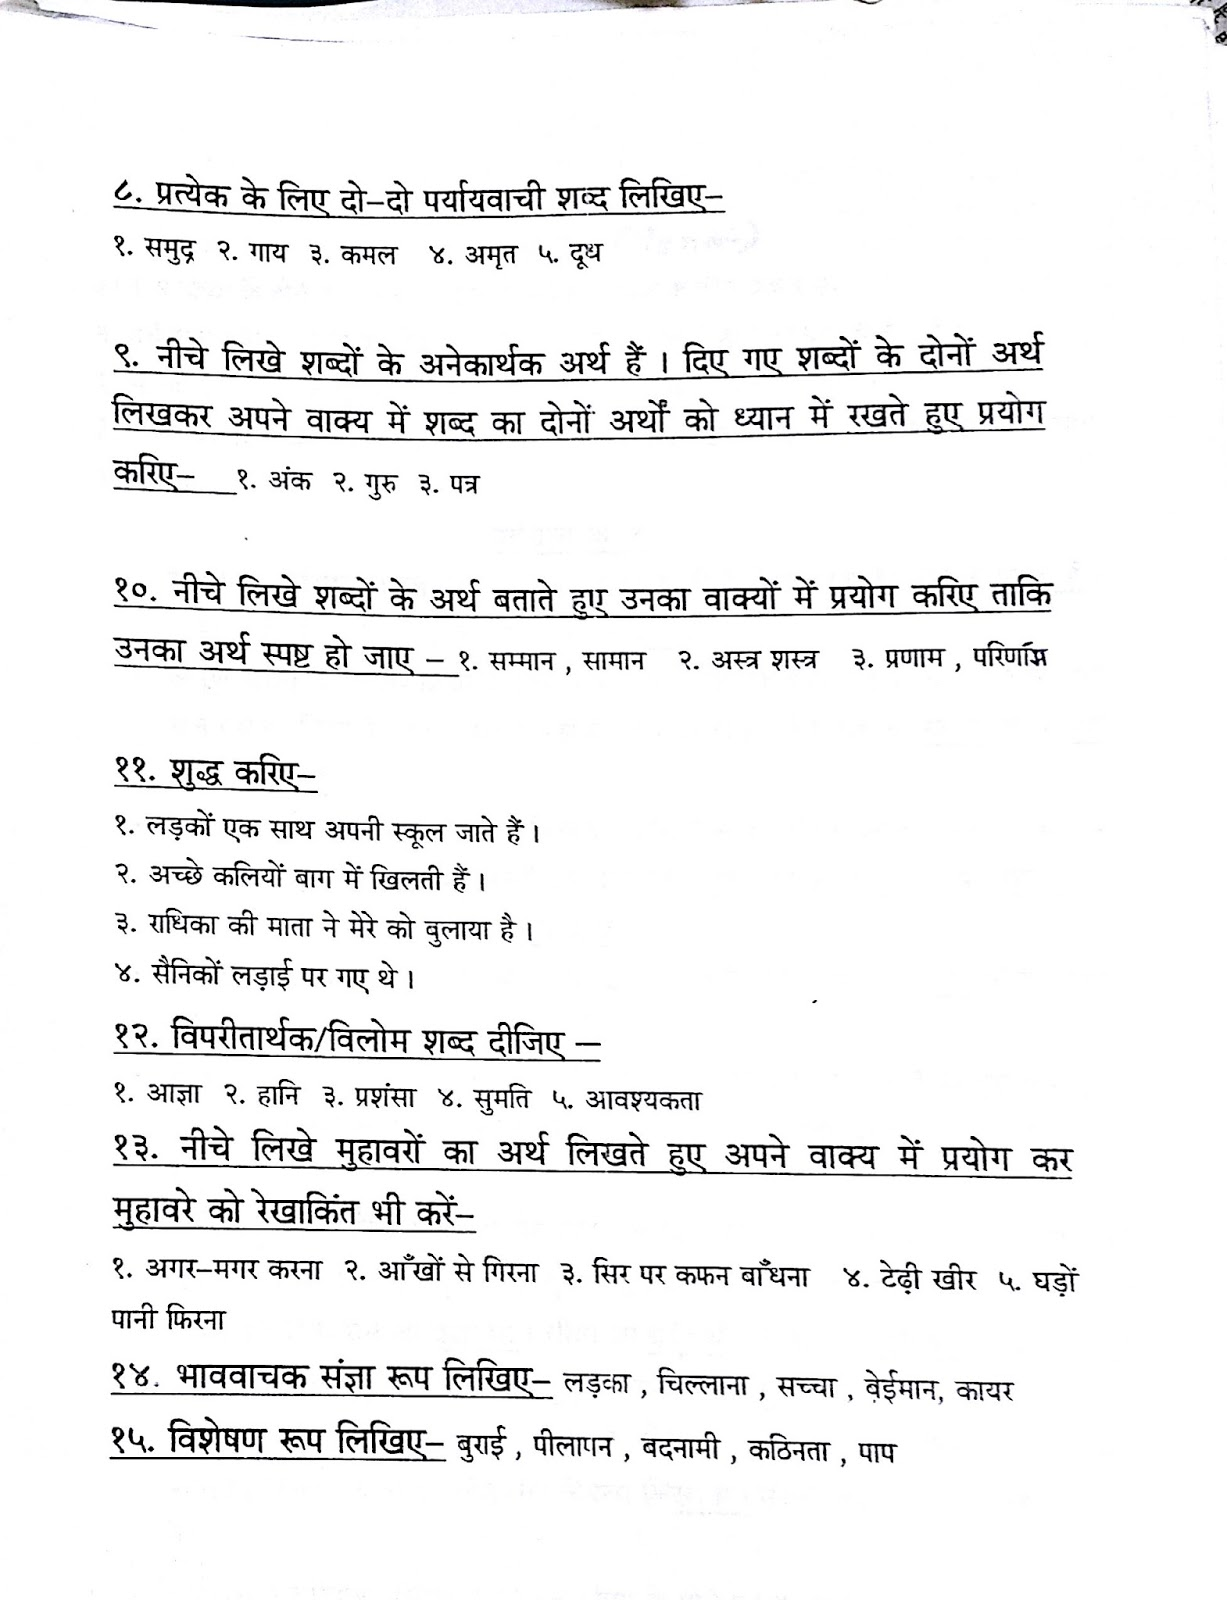 Hindi Grammar Work Sheet Collection For Classes 5 6 7 Amp 8 Revision Work Sheets Containing All